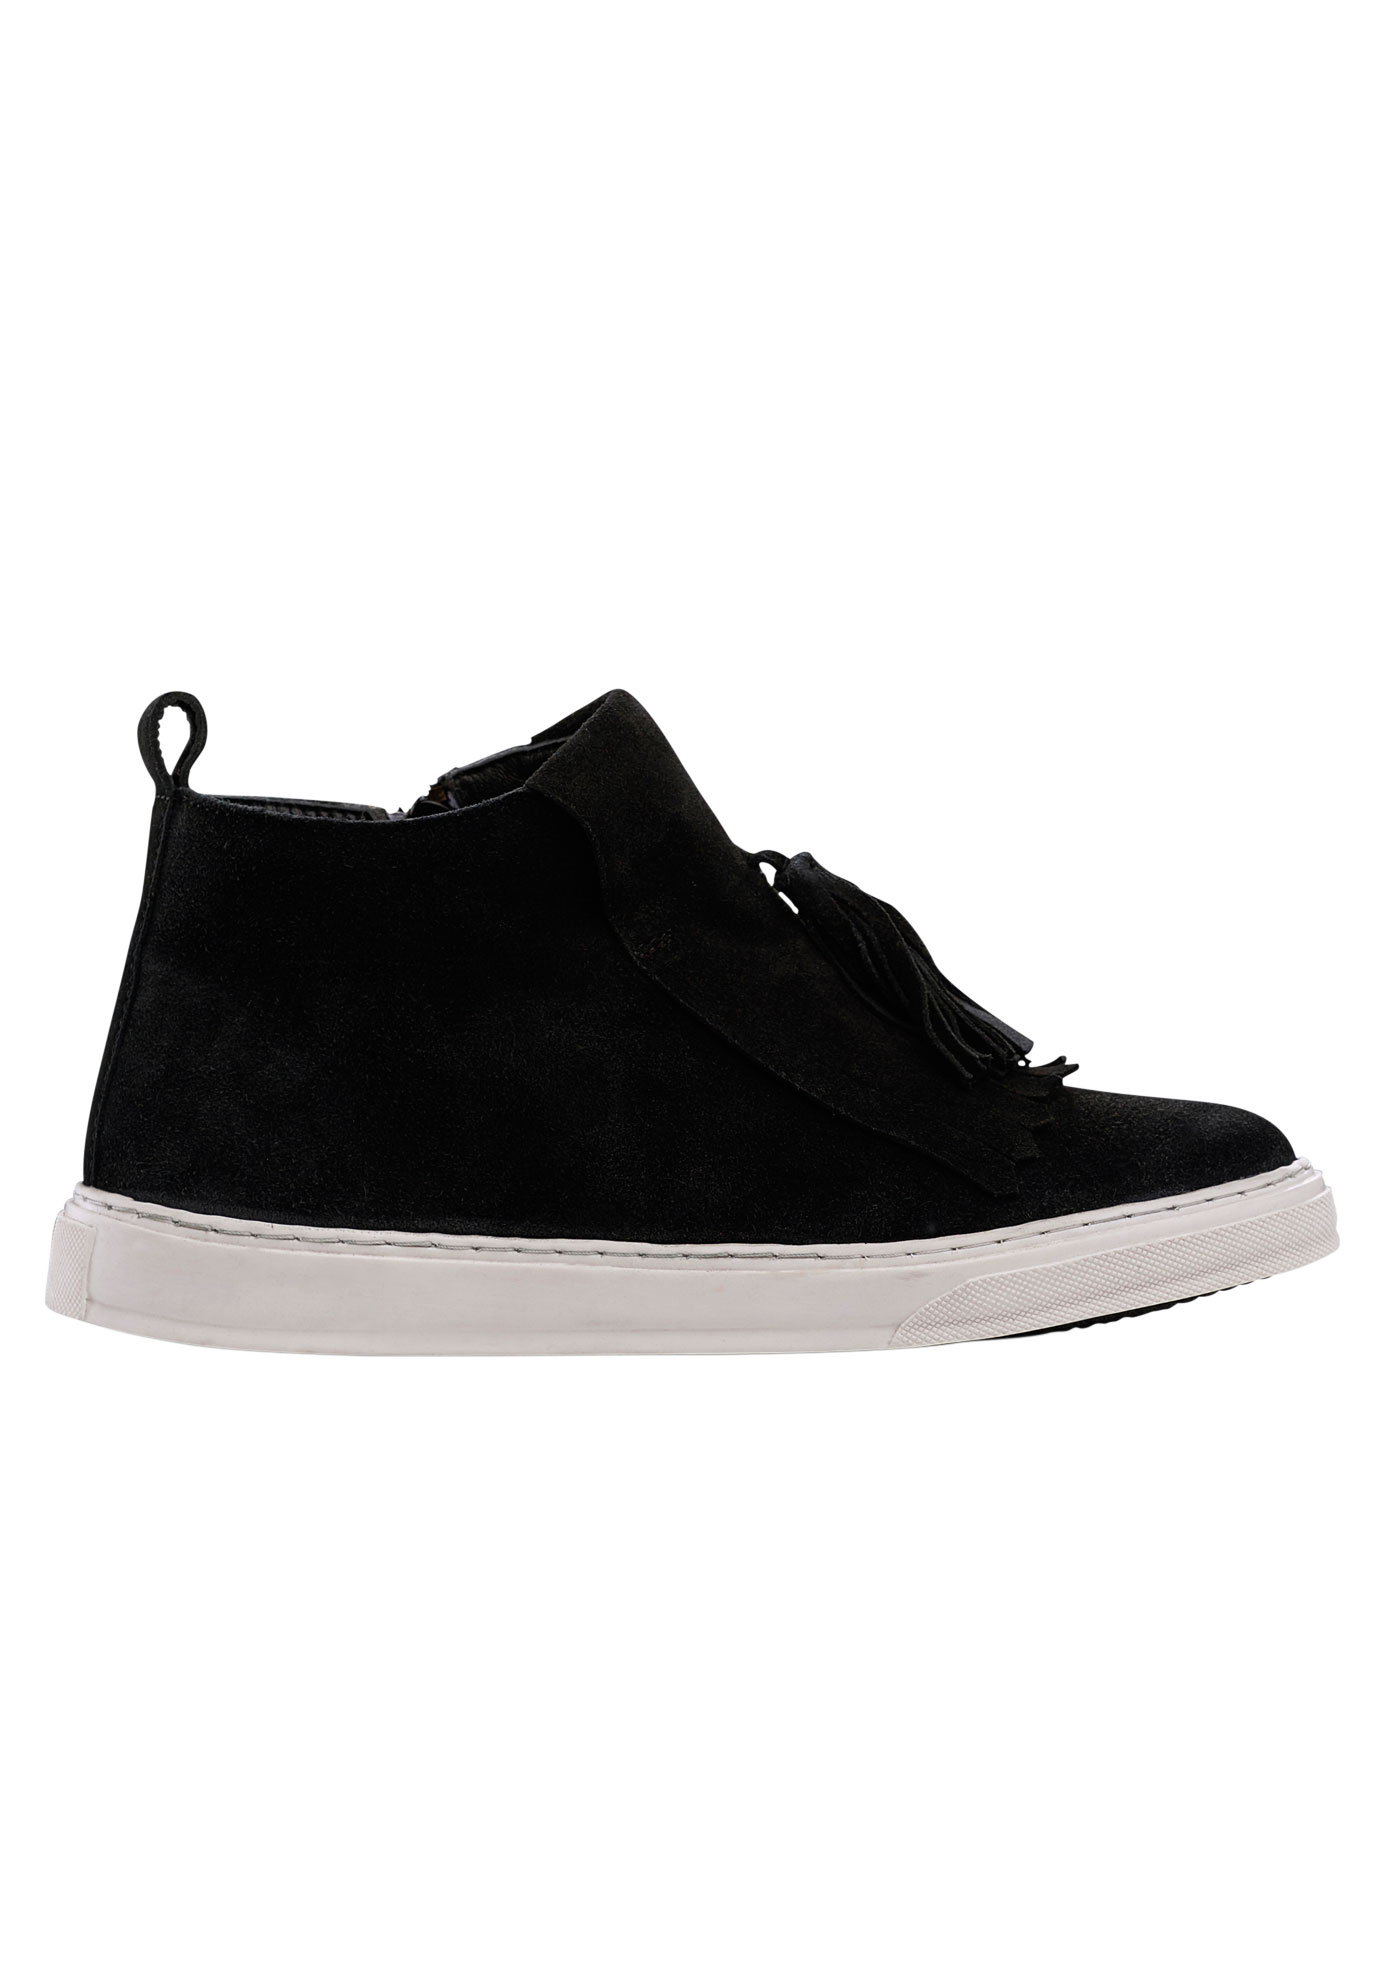 Fringe High Top Suede Sneaker,